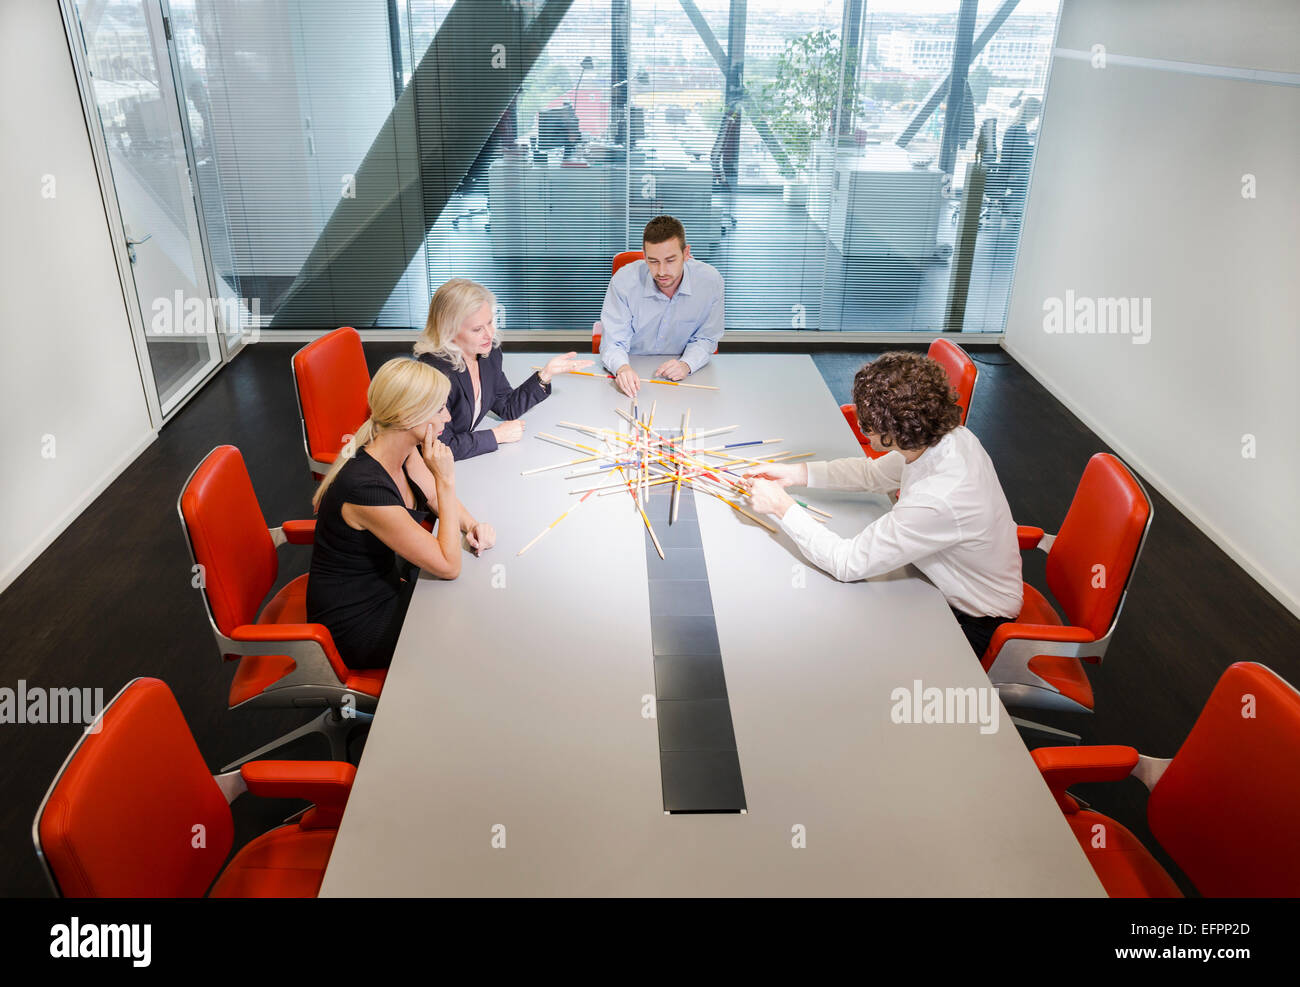 Colleagues problem solving in conference room - Stock Image